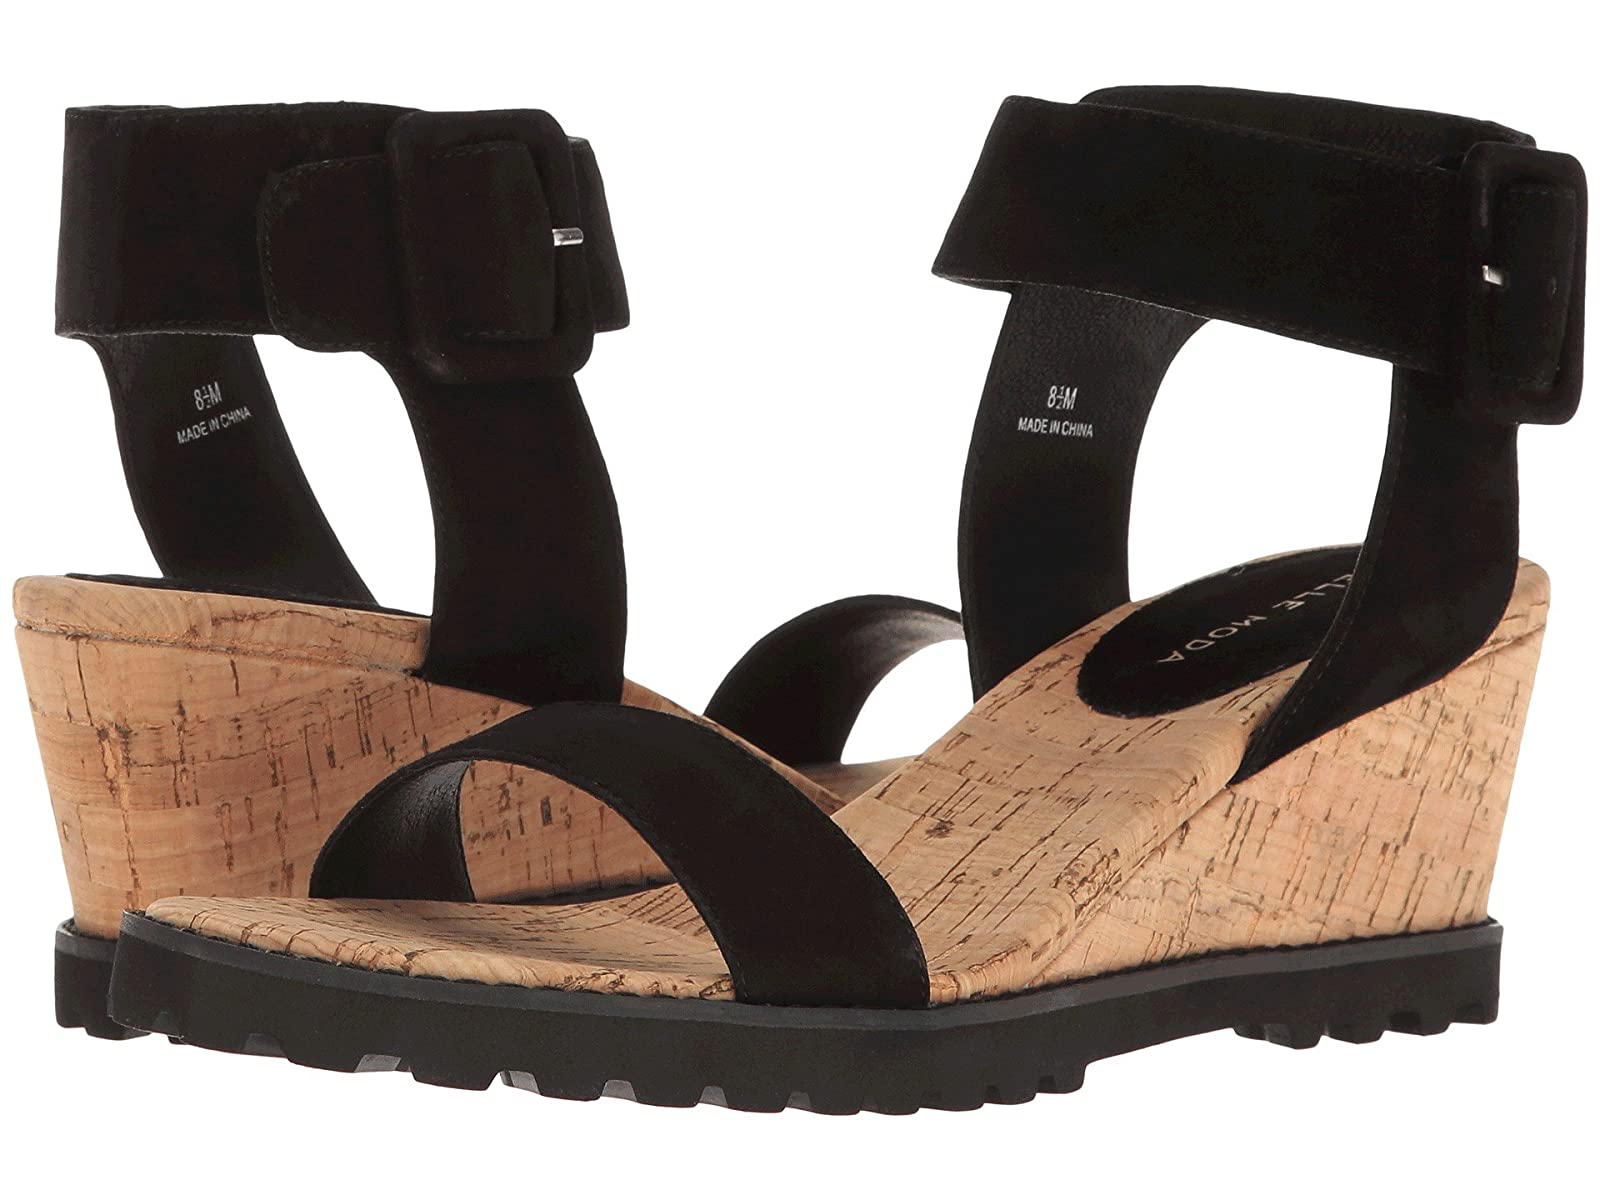 Pelle Moda RianCheap and distinctive eye-catching shoes